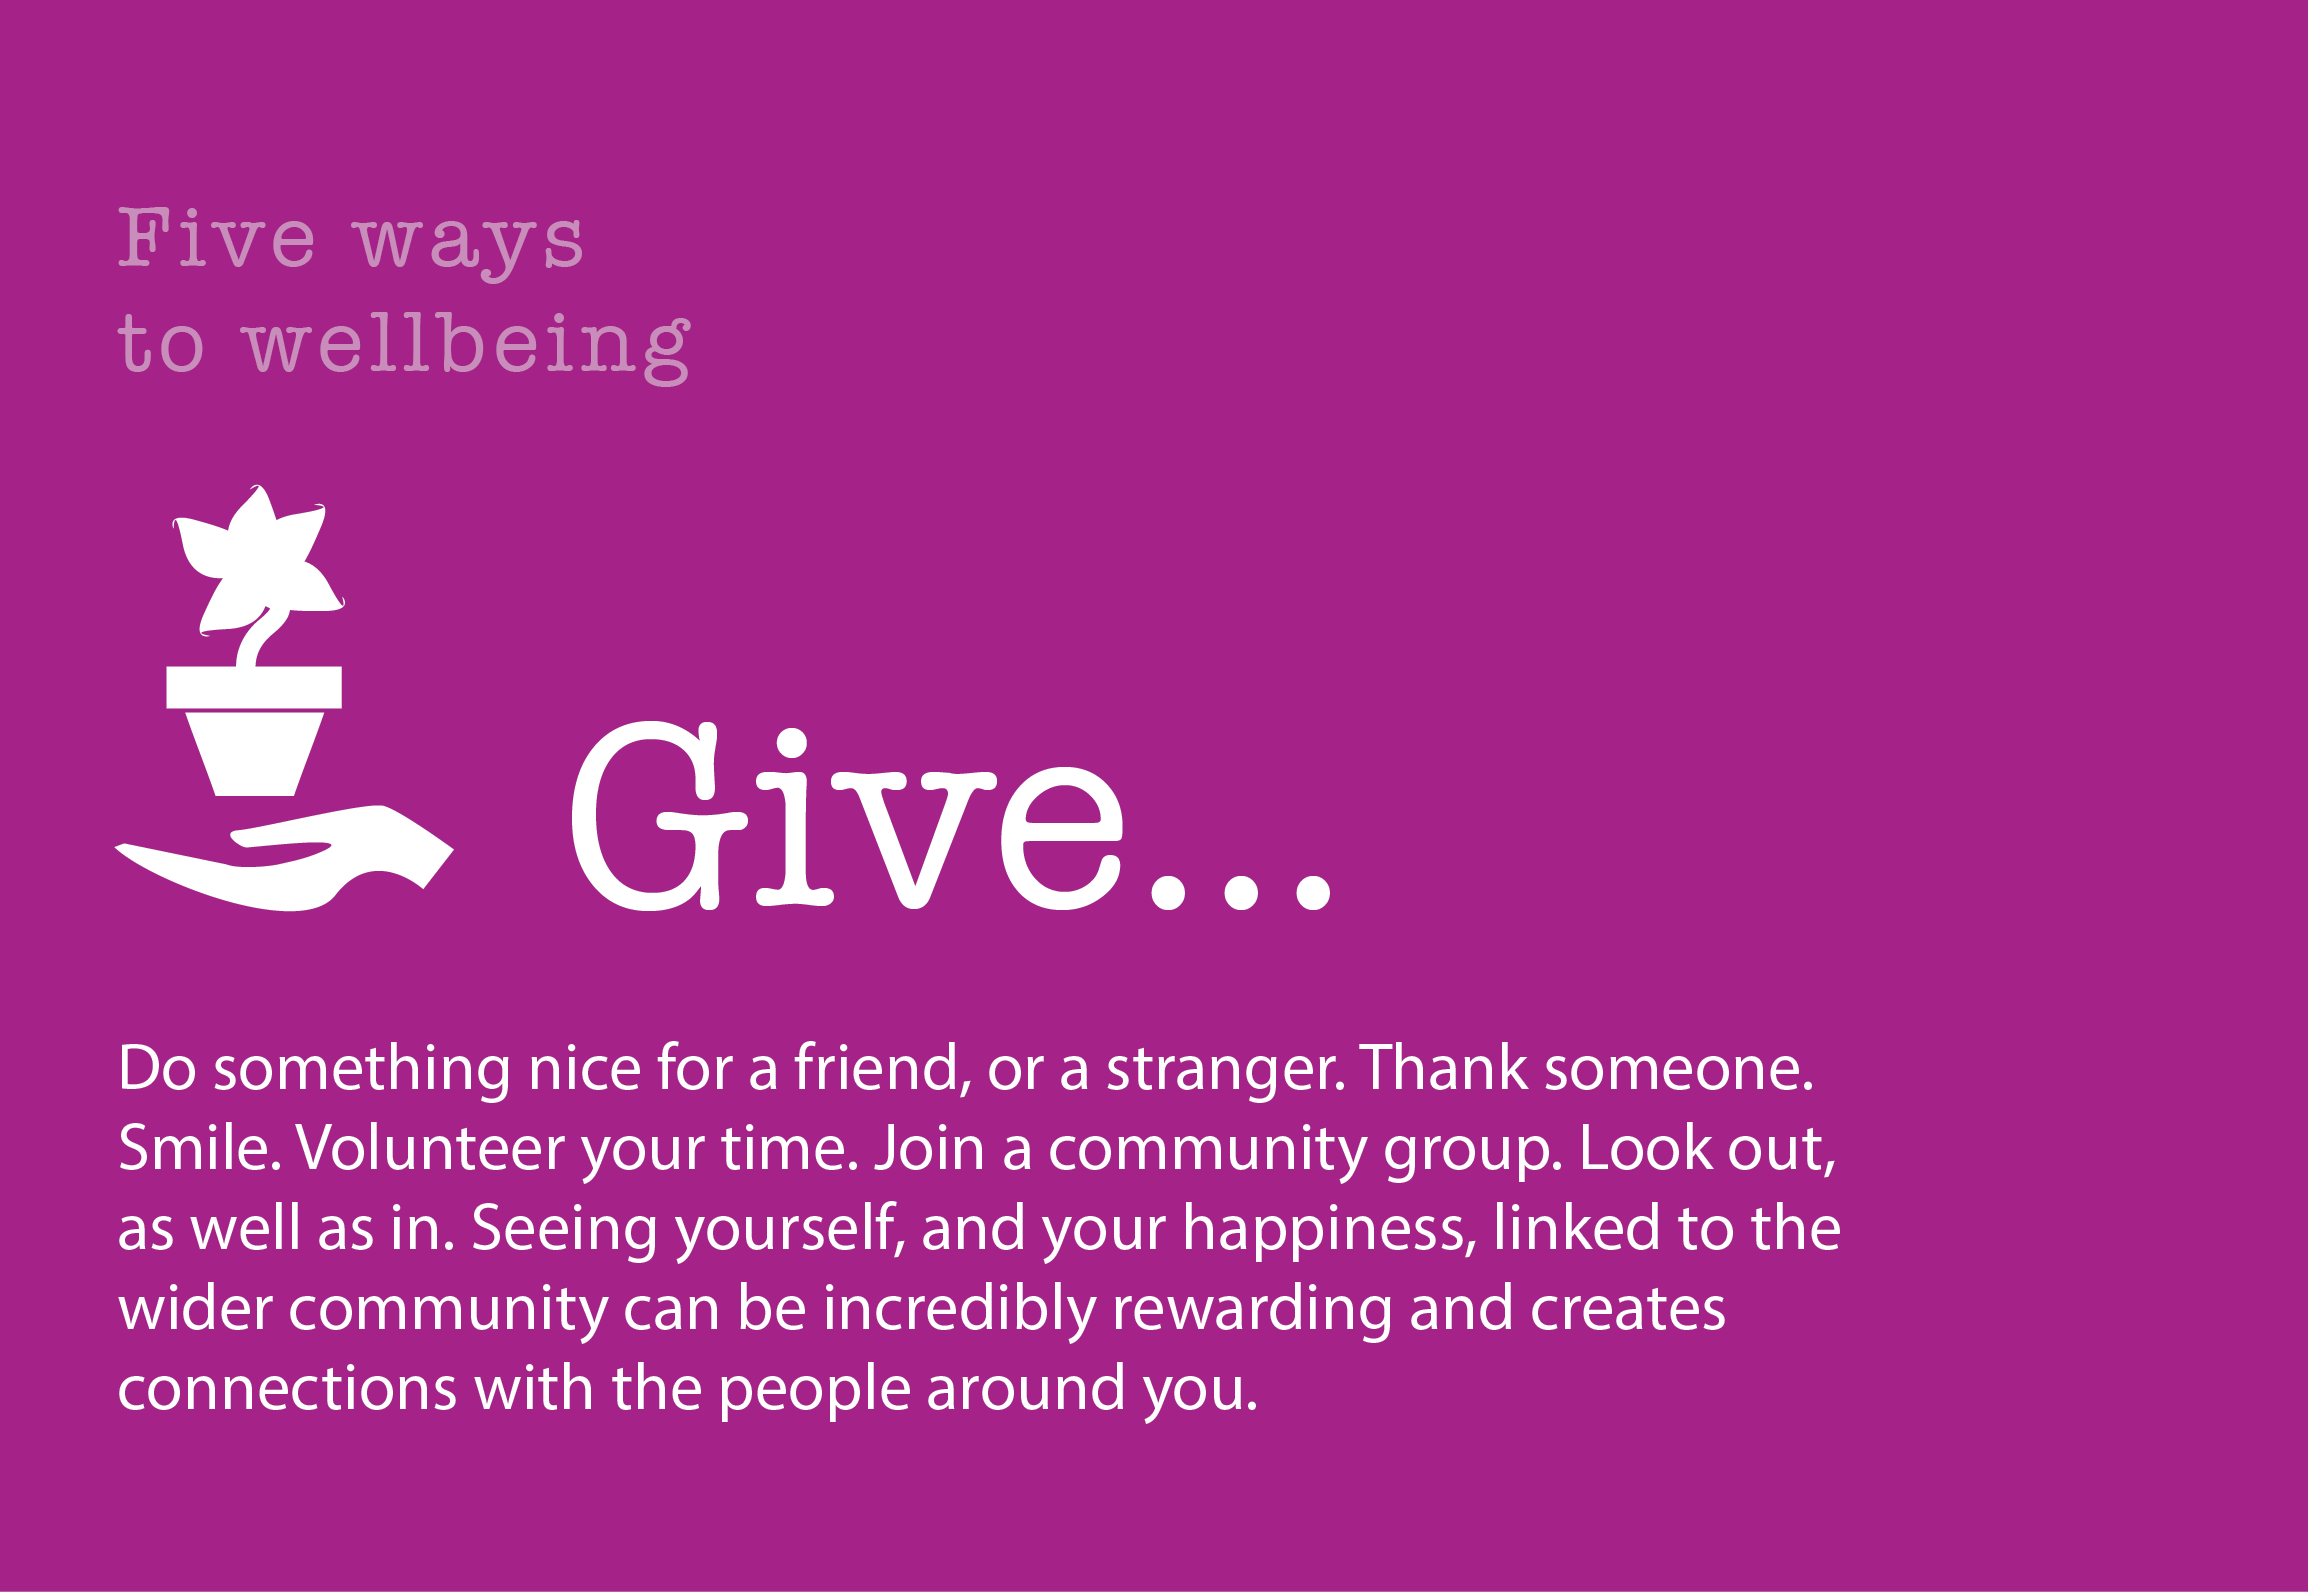 5 Ways to Wellbeing: Give. Do something nice for a friend, or a stranger. Thank someone. Smile. Volunteer your time. Join a community group. Look out, as well as in. Seeing yourself, and your happiness, linked to the wider community can be incredibly rewarding and creates connections with the people around you.